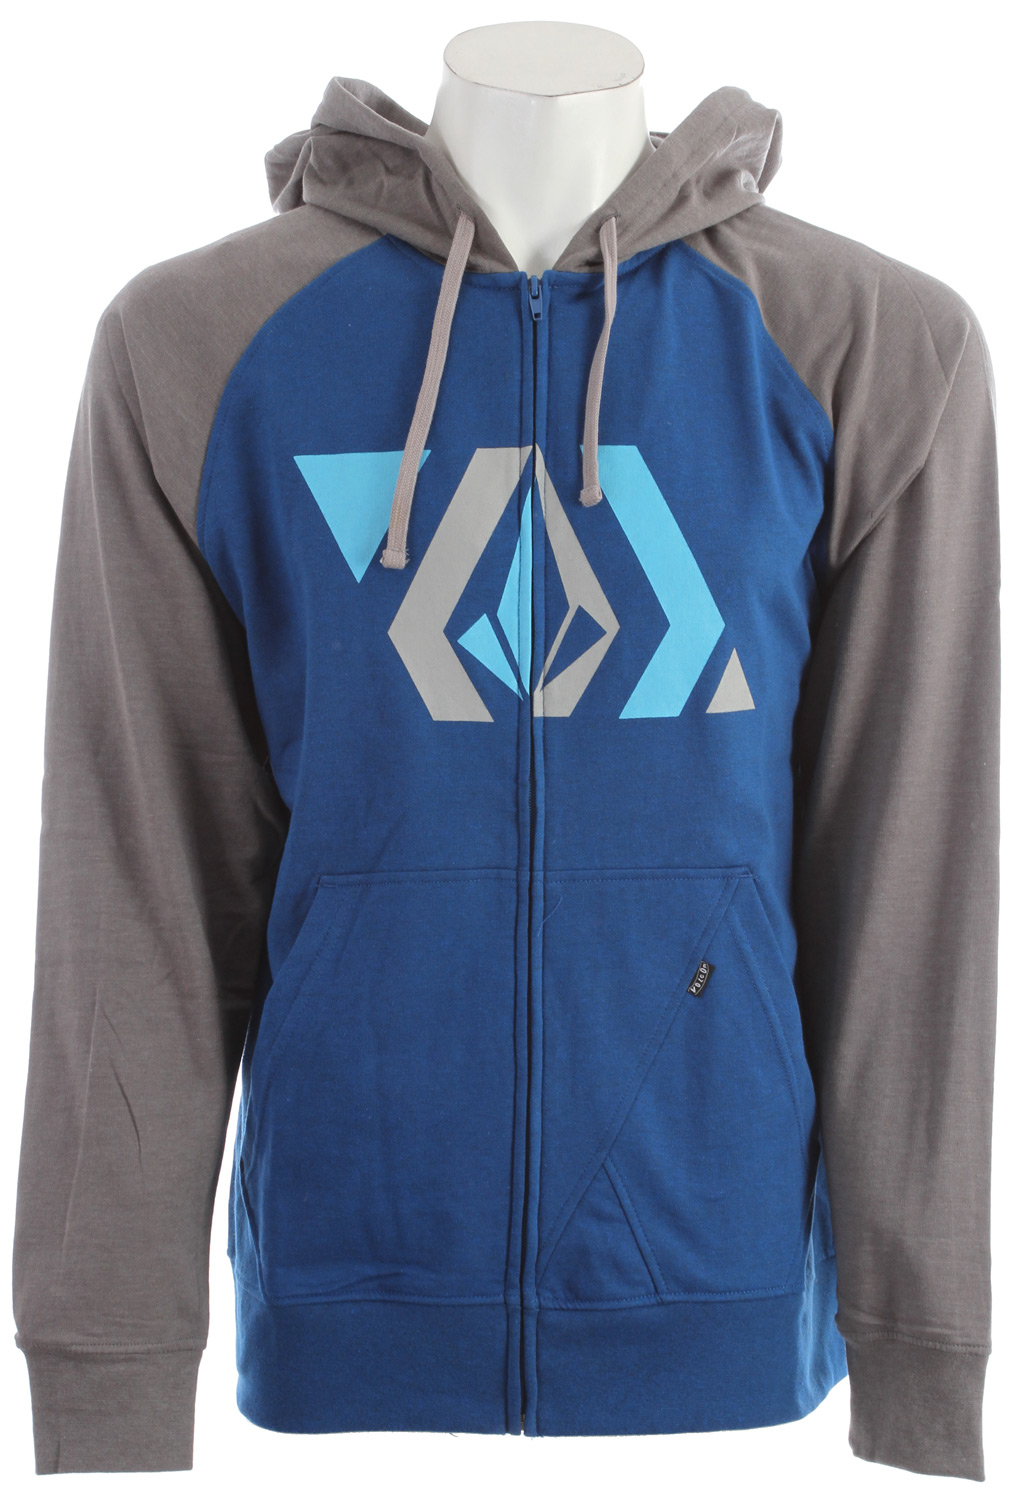 Surf The Volcom Stone Shapes Hoodie is a unique garment produced with high-quality knitted yarn to form a nice heather fabric. Heather gives it a nice, soft feel while helping insulated during the colder months, making the Volcom Stone Shapes a perfect hoodie for chilly fall nights and winter days. With a fully adjustable drawstring hood to help maximize its cold-weather potential, the Stone Shapes is an excellent choice to help keep you warm year round. Fans of the Volcom brand will also be proud to boldly display their emblem, which features prominently in the design.Key Features of the Volcom Stone Shapes Hoodie:  Heather slim zip hood  Contrast hood and raglan sleeves  2-tone drawcords  Stone panel pocket detail  Pre-Shrunk  Slim fit  55% Cotton / 45% Polyester heather fleece, 220-230gm - $24.95